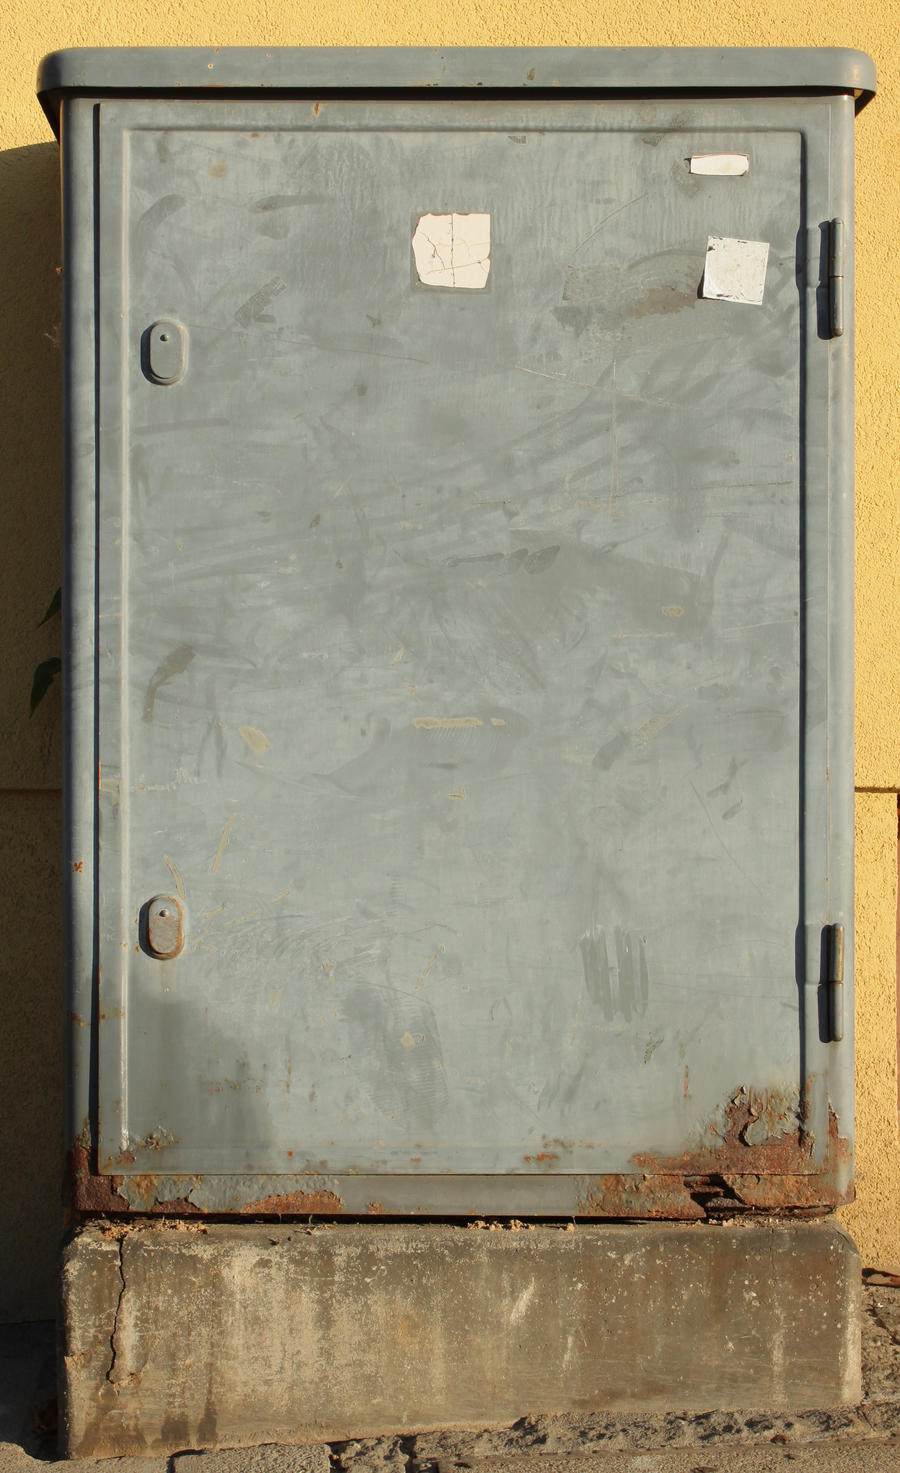 fuse box by agf81 on deviantart light texture fuse box by agf81 fuse box by agf81